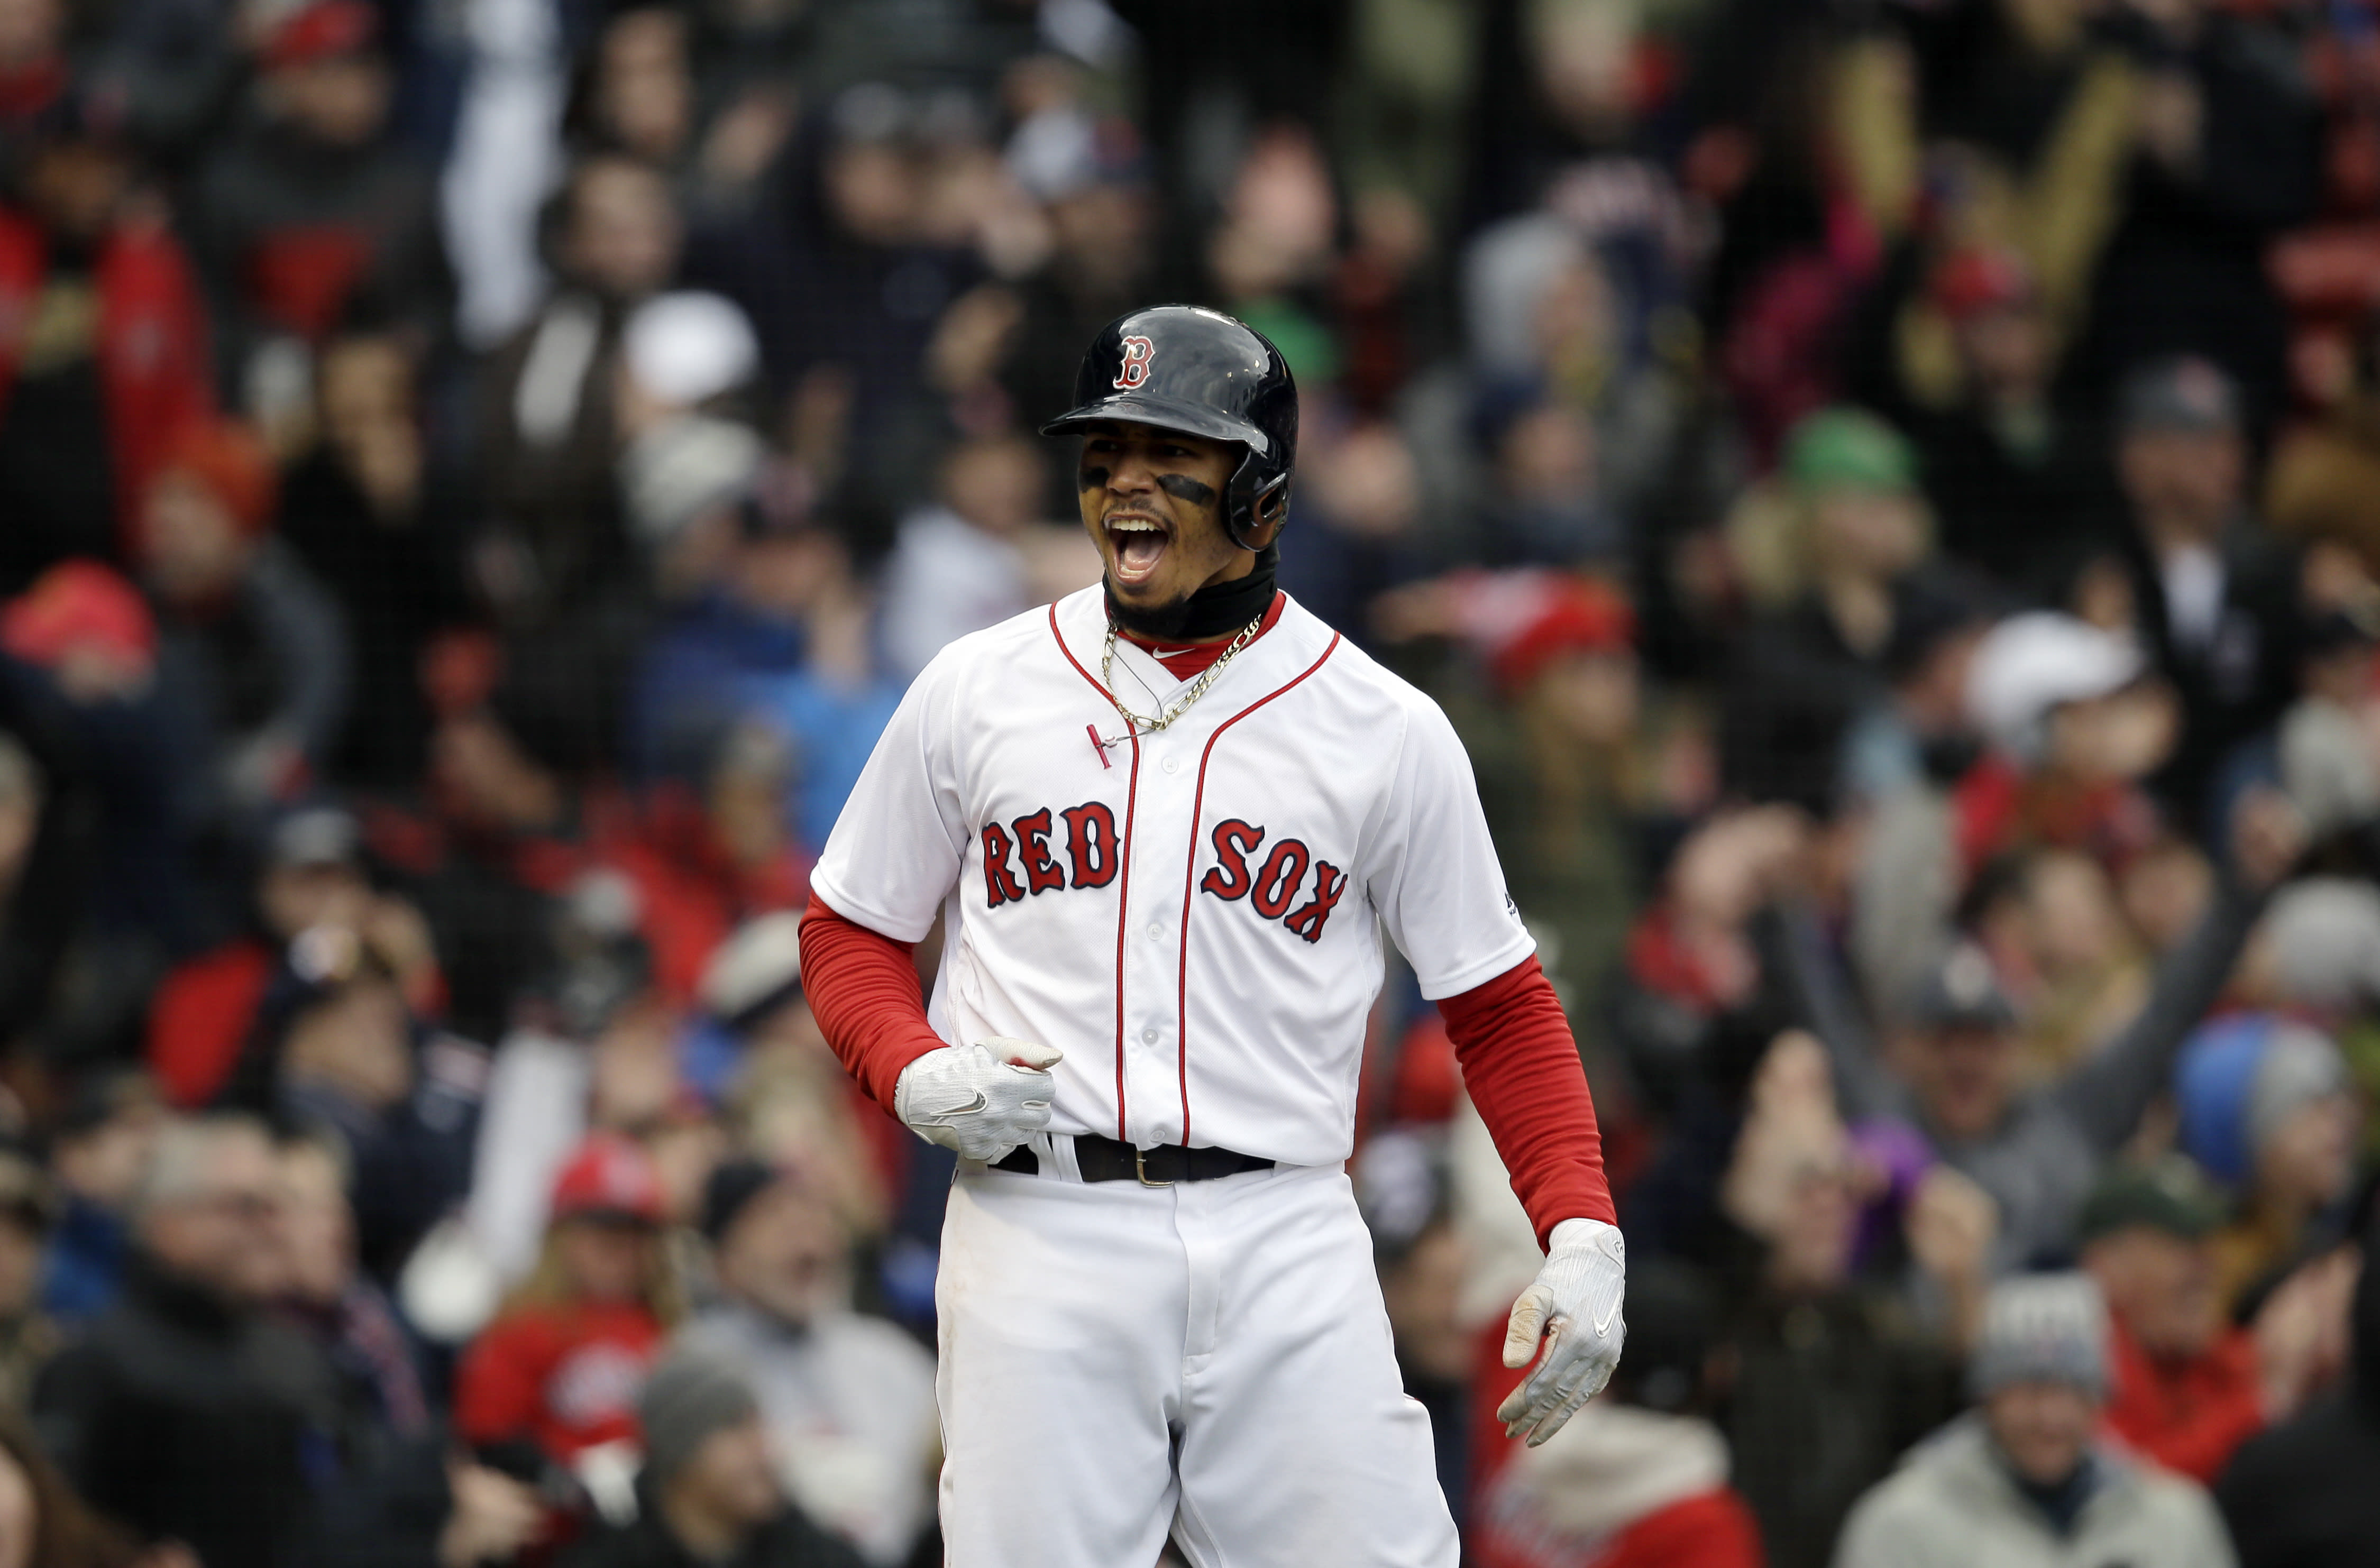 Red Sox off to best start in franchise history after unbelievable comeback